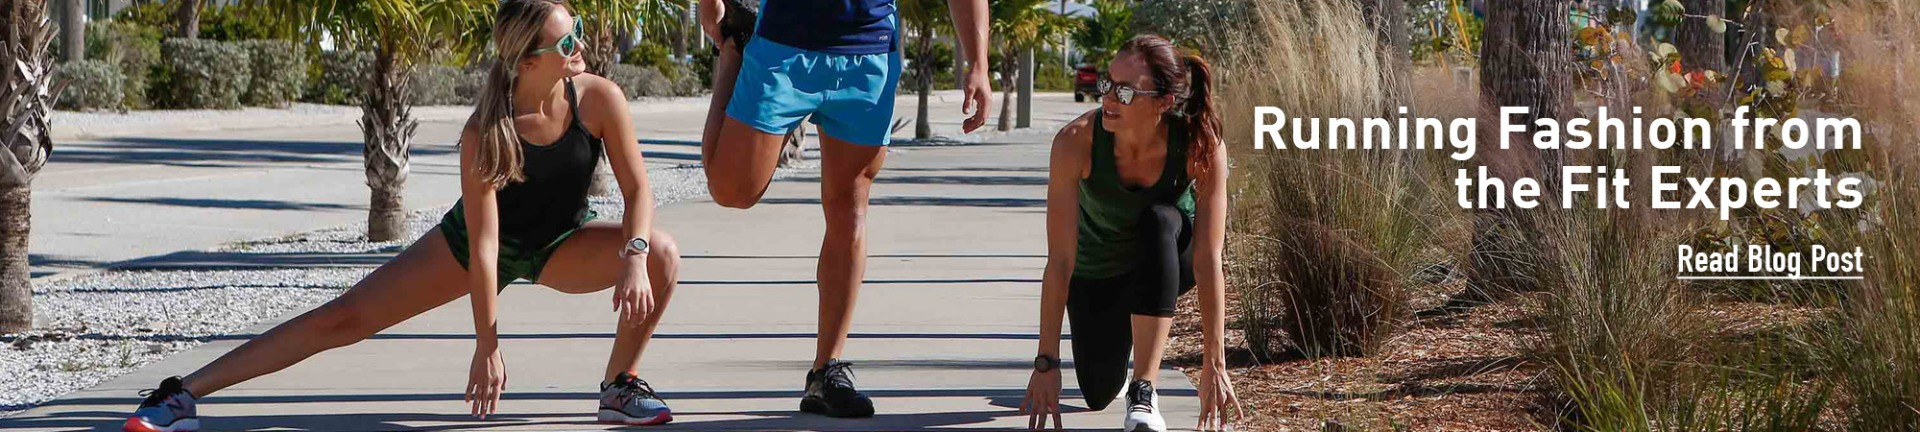 Trendy Styles and Running Fashion from the Fit Experts | Fit2Run